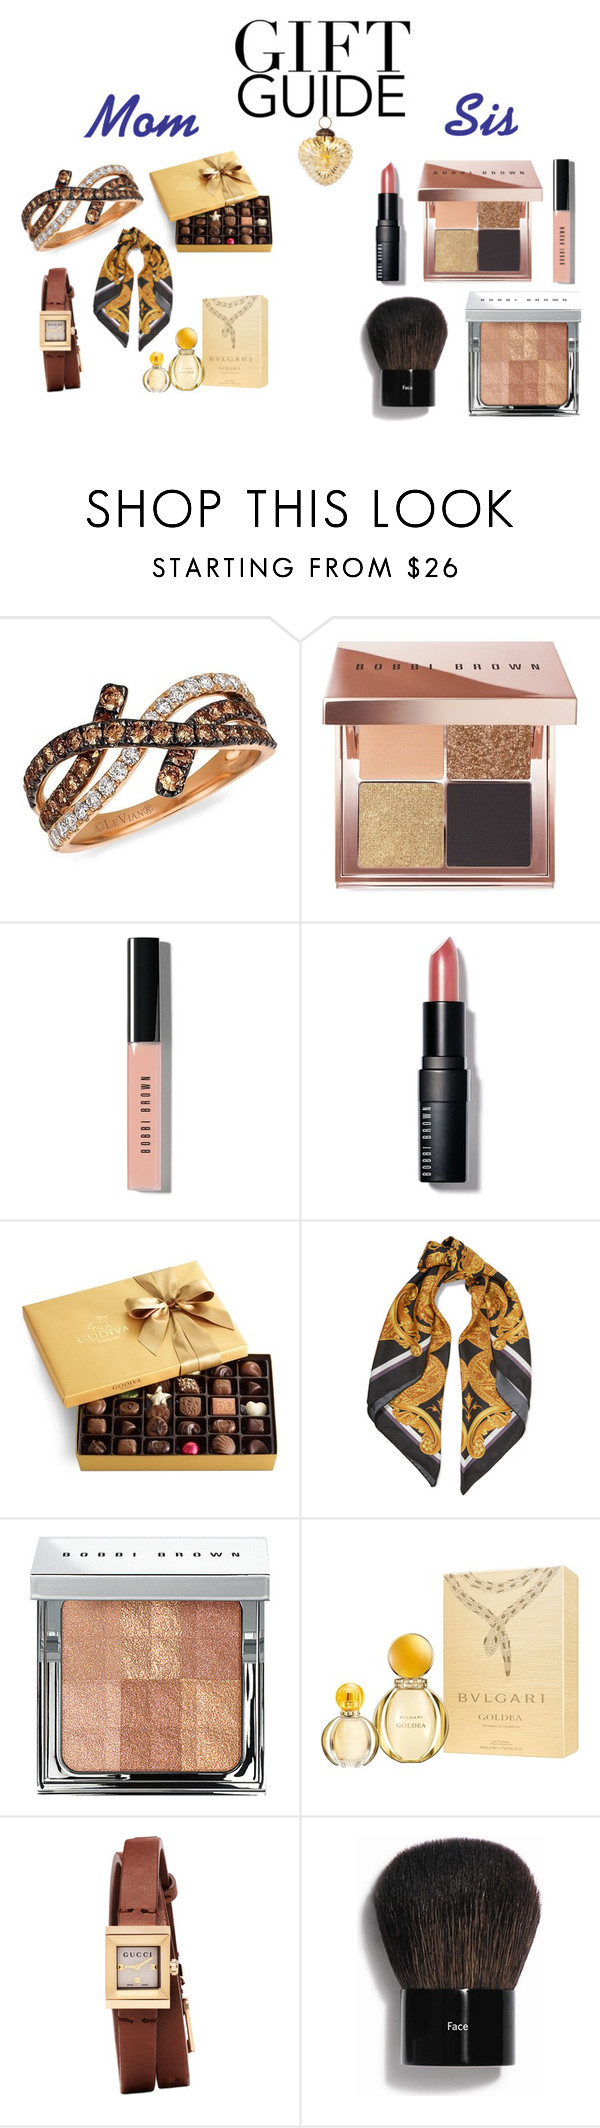 """""""Gift Guide: Your Mom and Sis"""" by ange-12 ❤ liked on Polyvore featuring LeVian, Bobbi Brown Cosmetics, Godiva, Versace, Bulgari, Gucci, Cultural Intrigue and giftguide"""